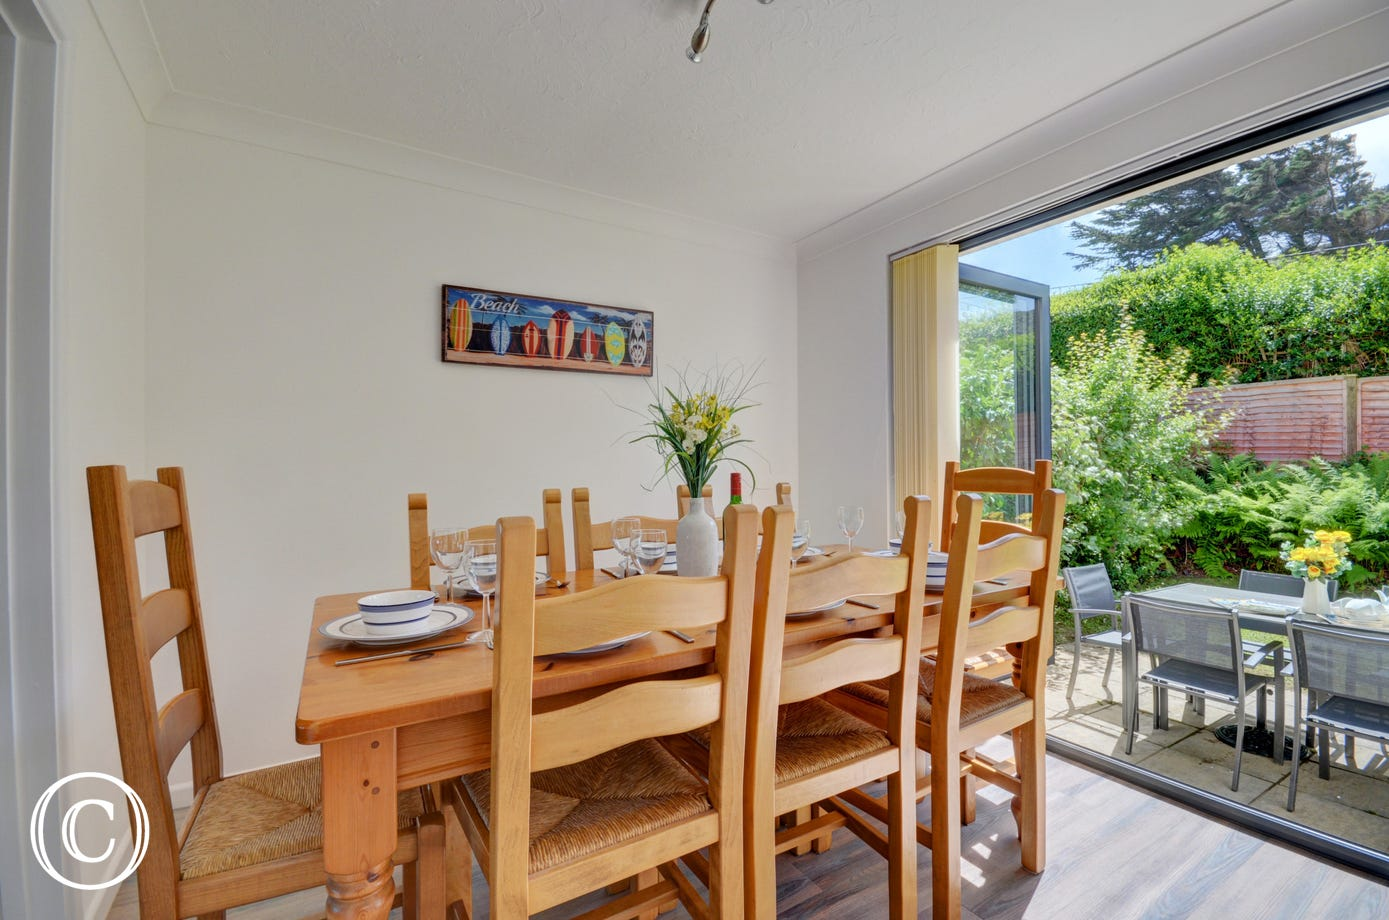 The dining room is light and airy and has patio doors that lead to the rear garden